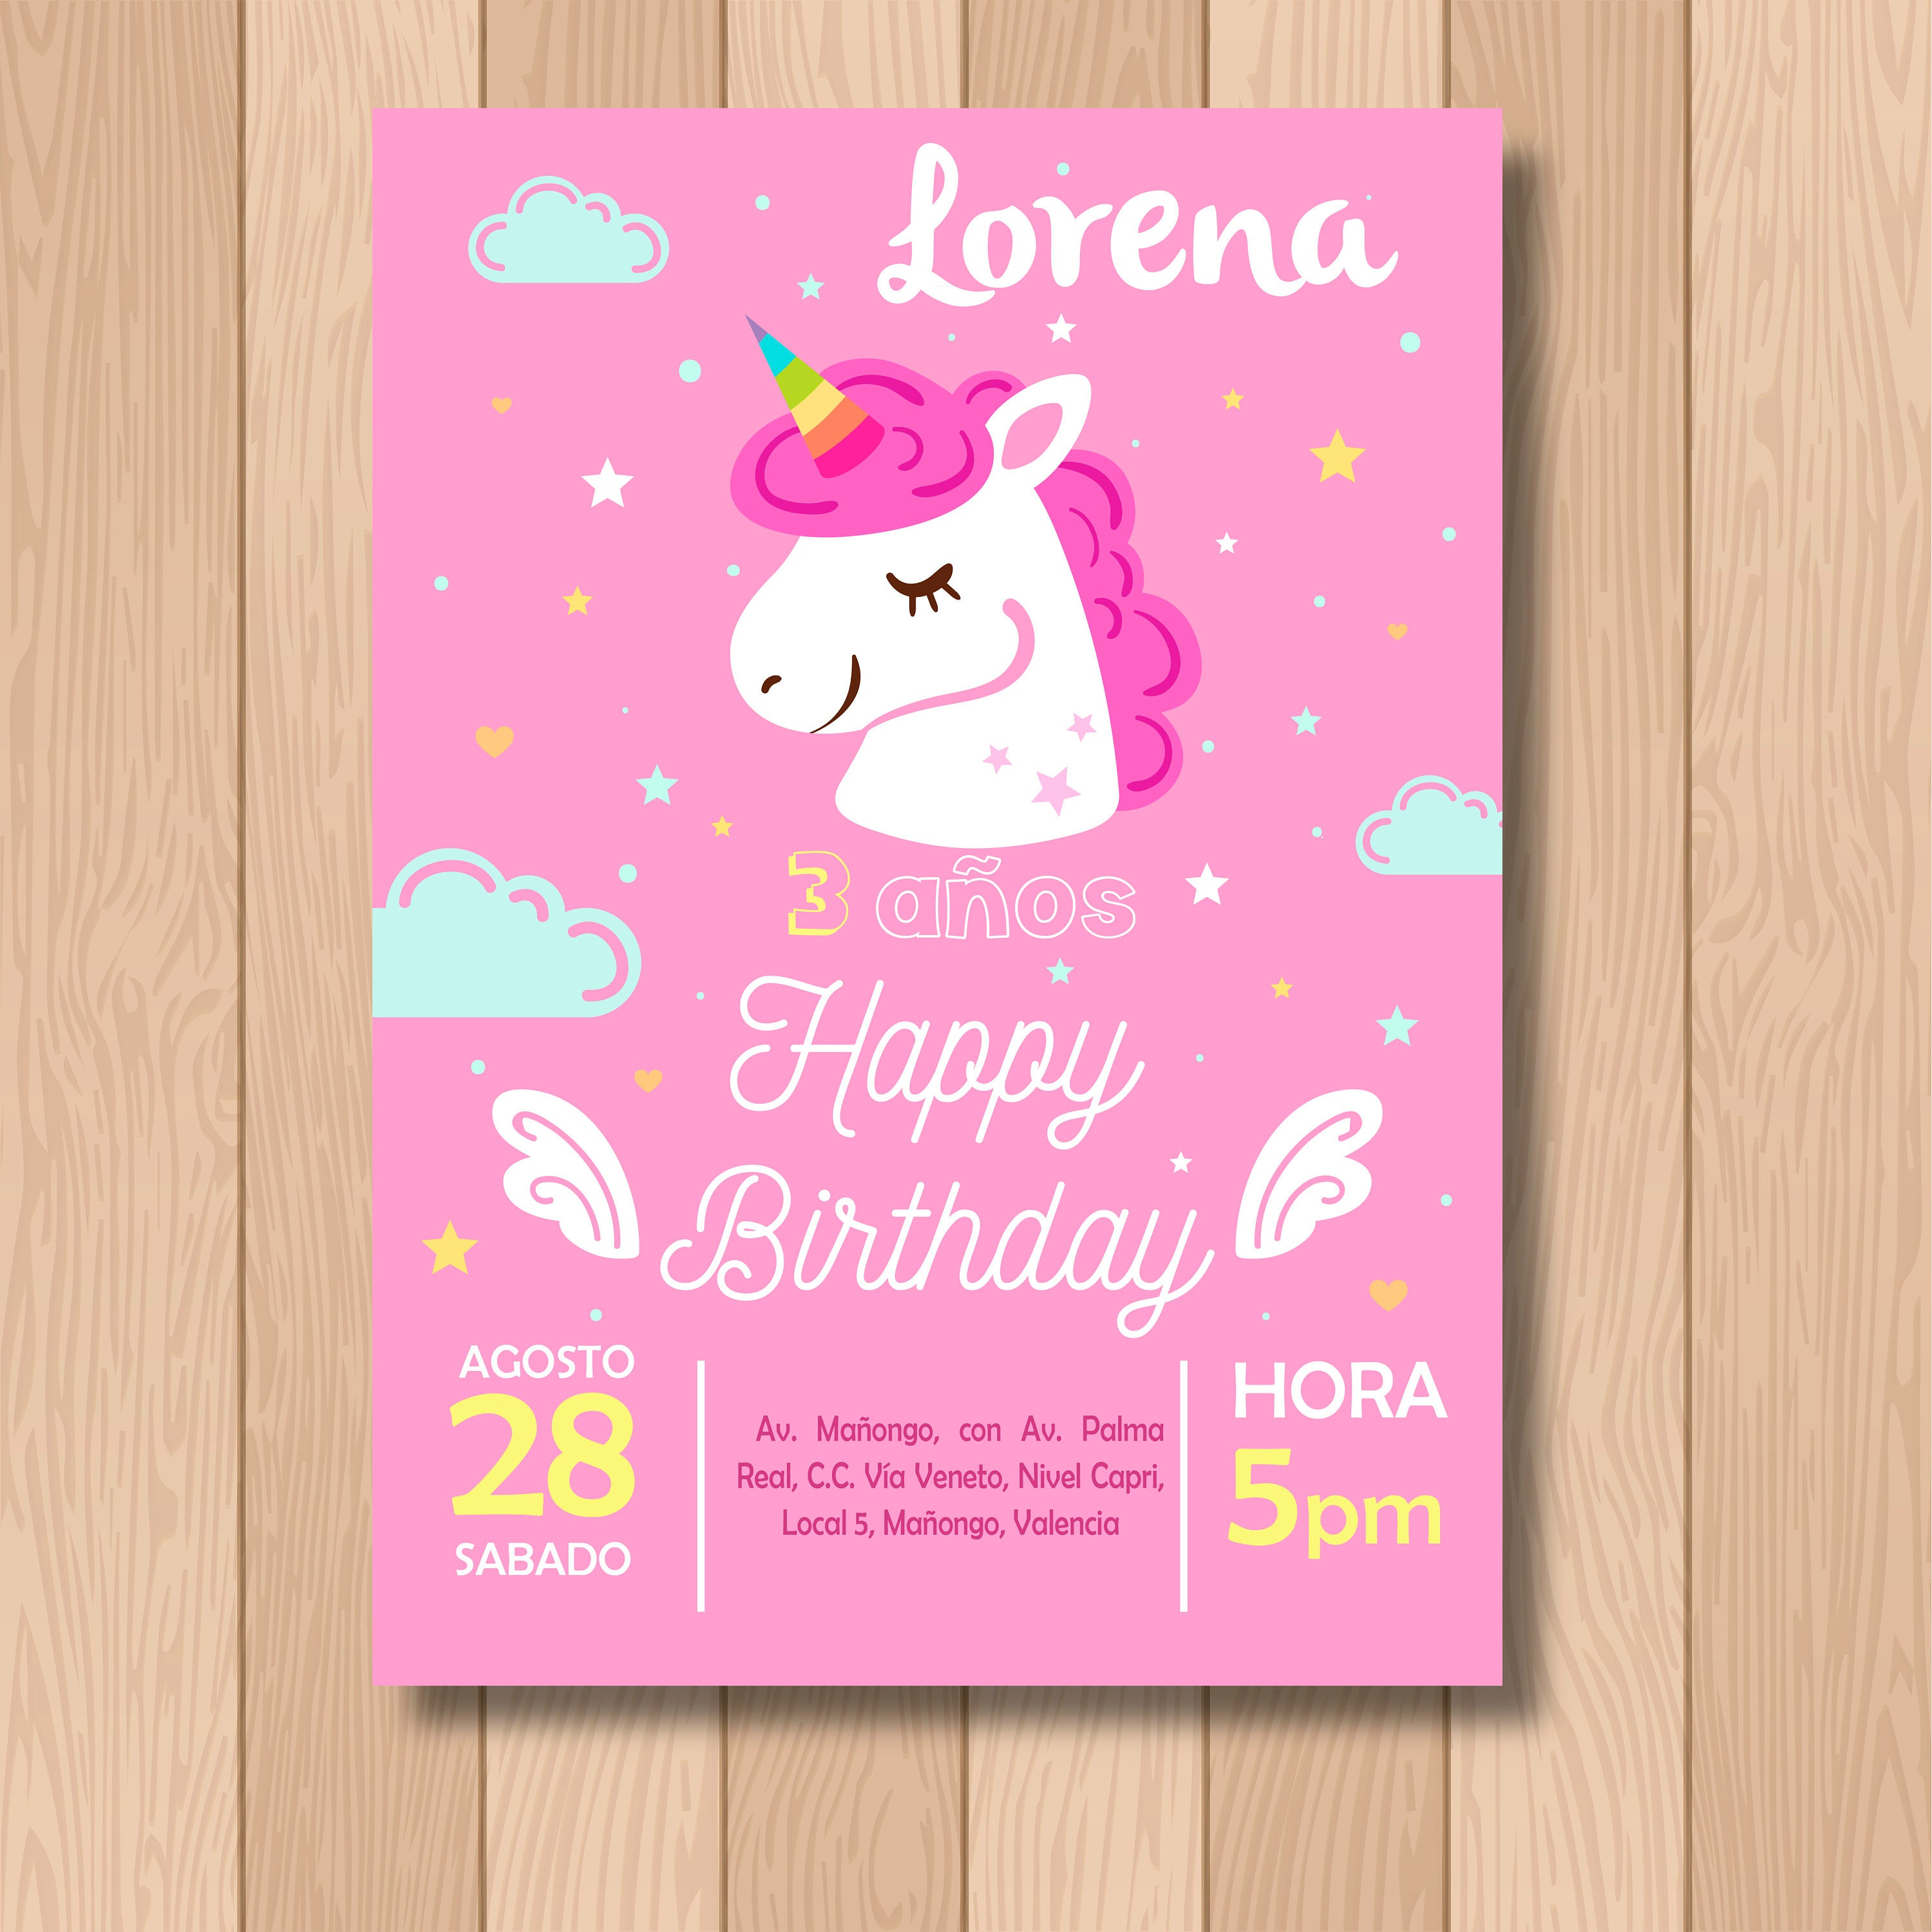 Digital Birthday Card Image collections Free Birthday Cards